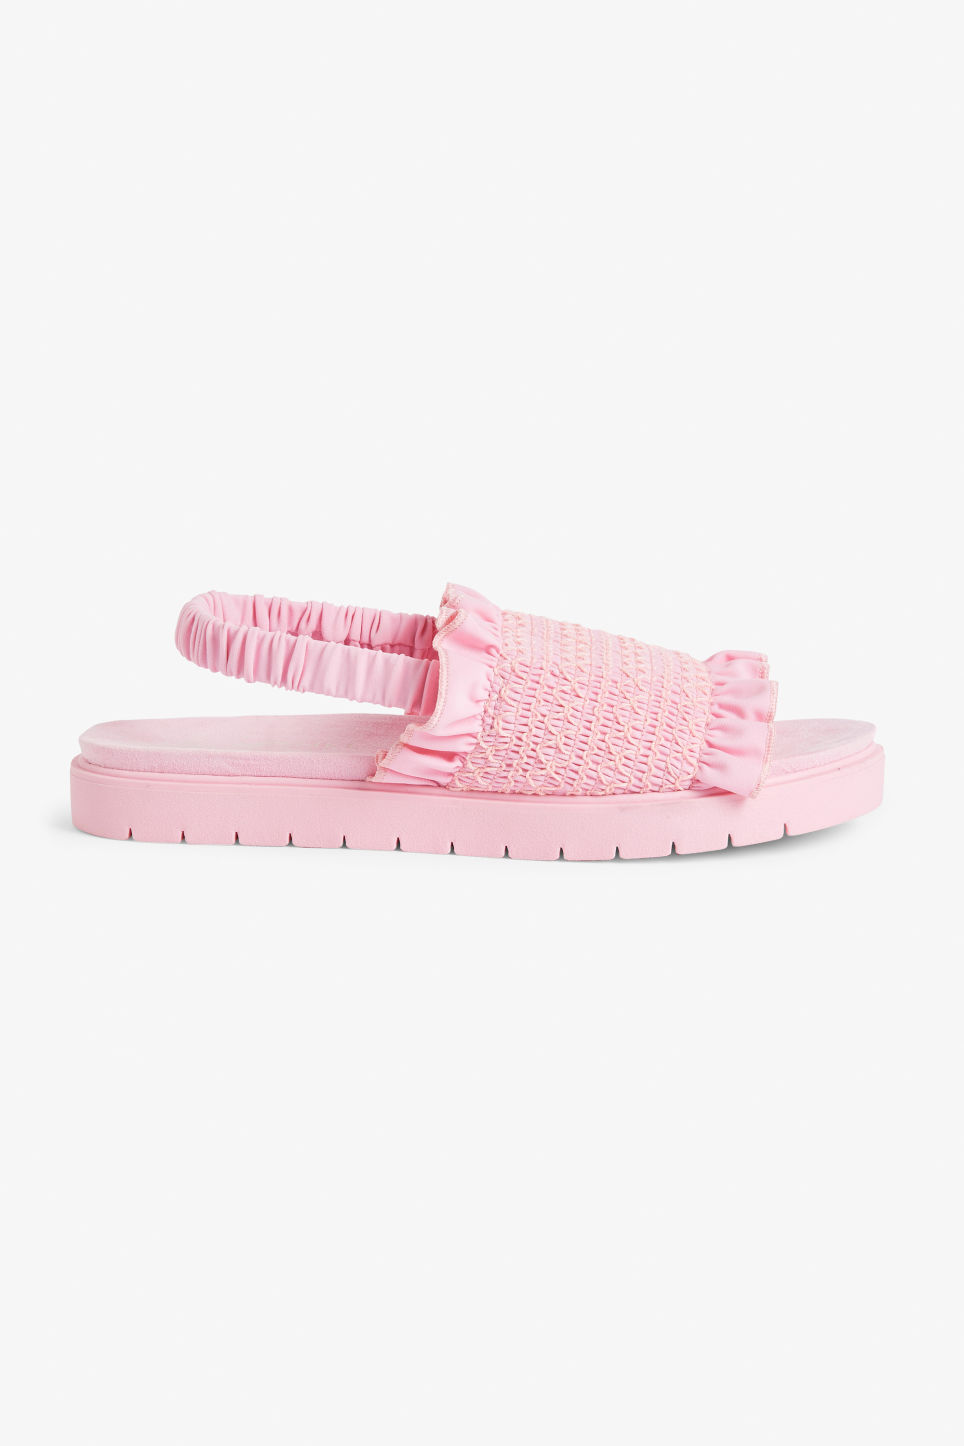 Detailed image of Monki slingback sandals in pink